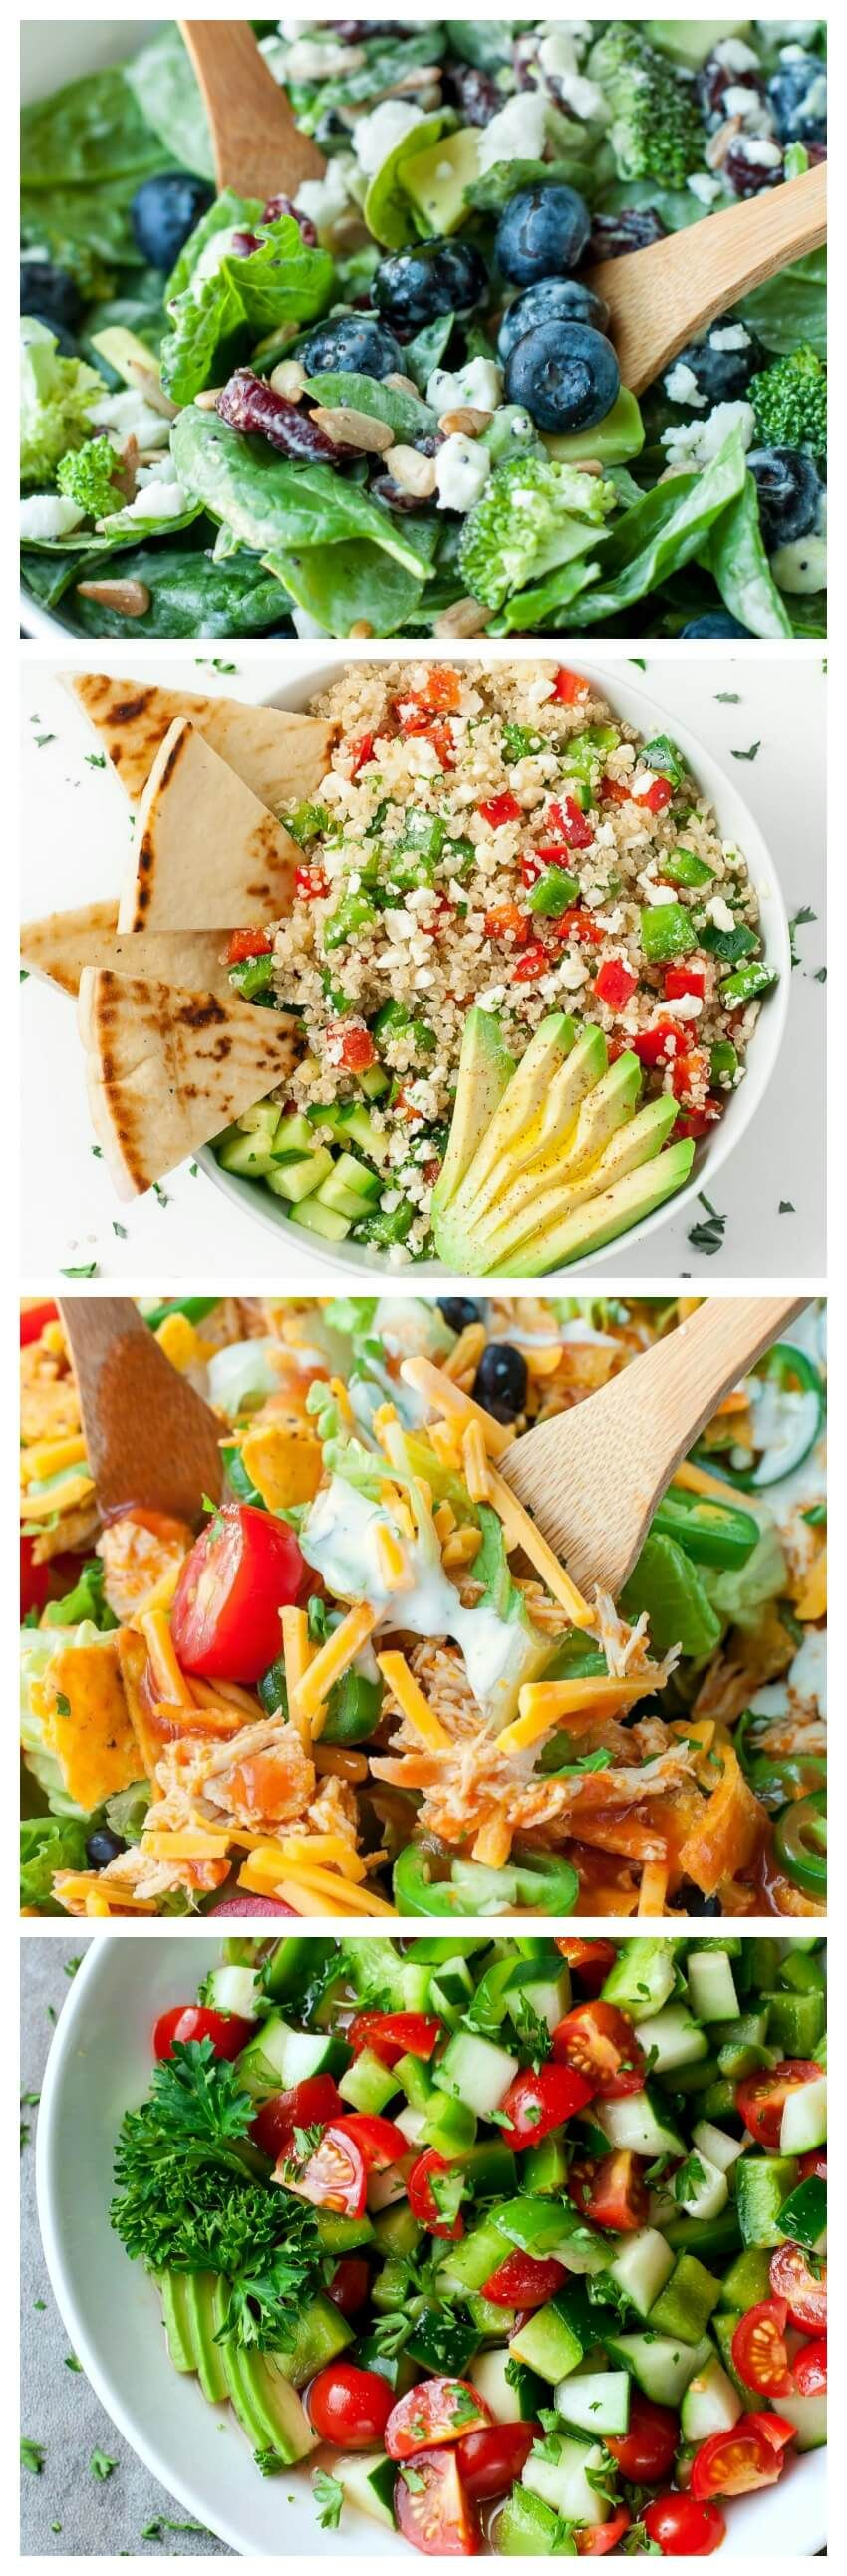 20 Easy Healthy Salad Recipes: with vegetarian, vegan, paleo, low-carb, and gluten-free options to choose from, there's something for everyone on this list!